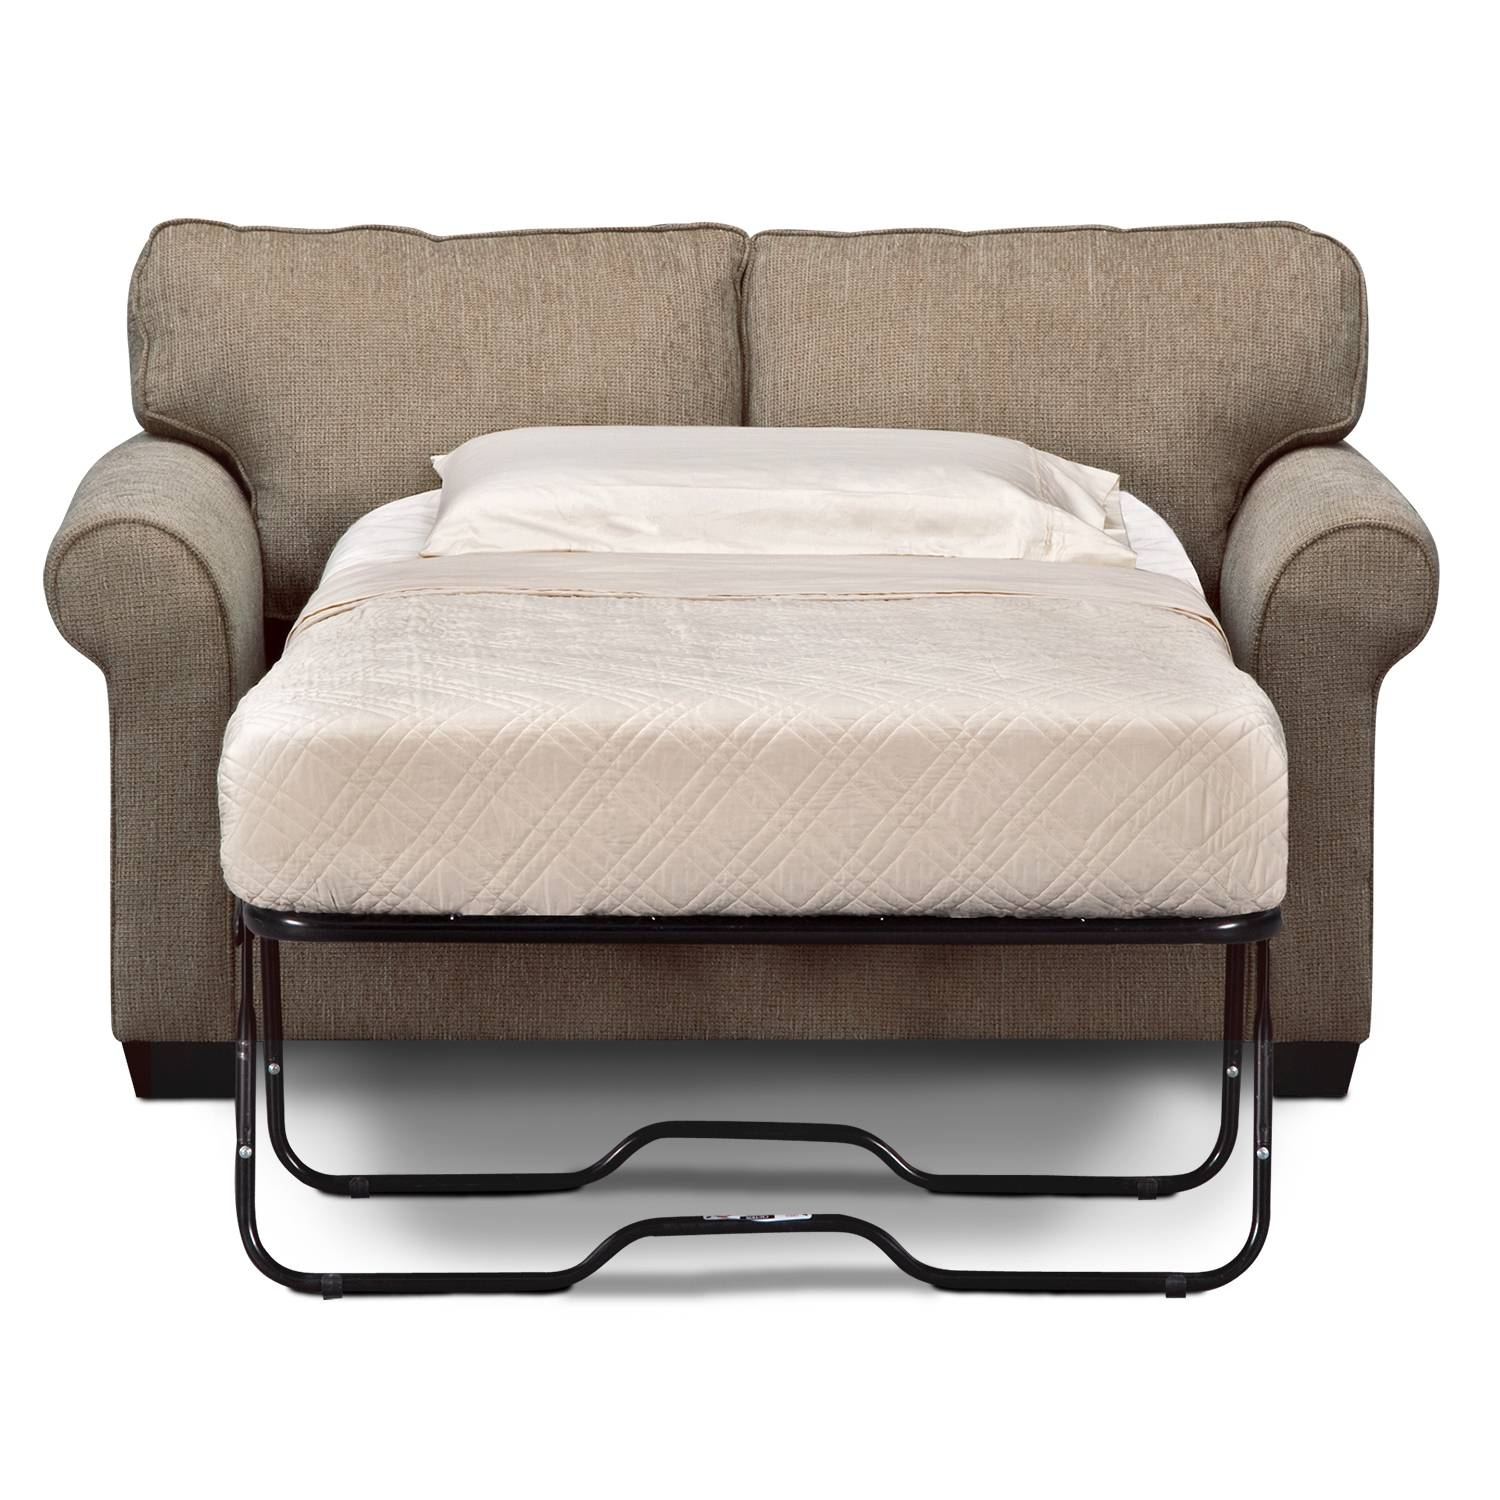 Twin Sleeper Sofa Bed | Home Decor & Interior/ Exterior for Mini Sofa Sleepers (Image 29 of 30)